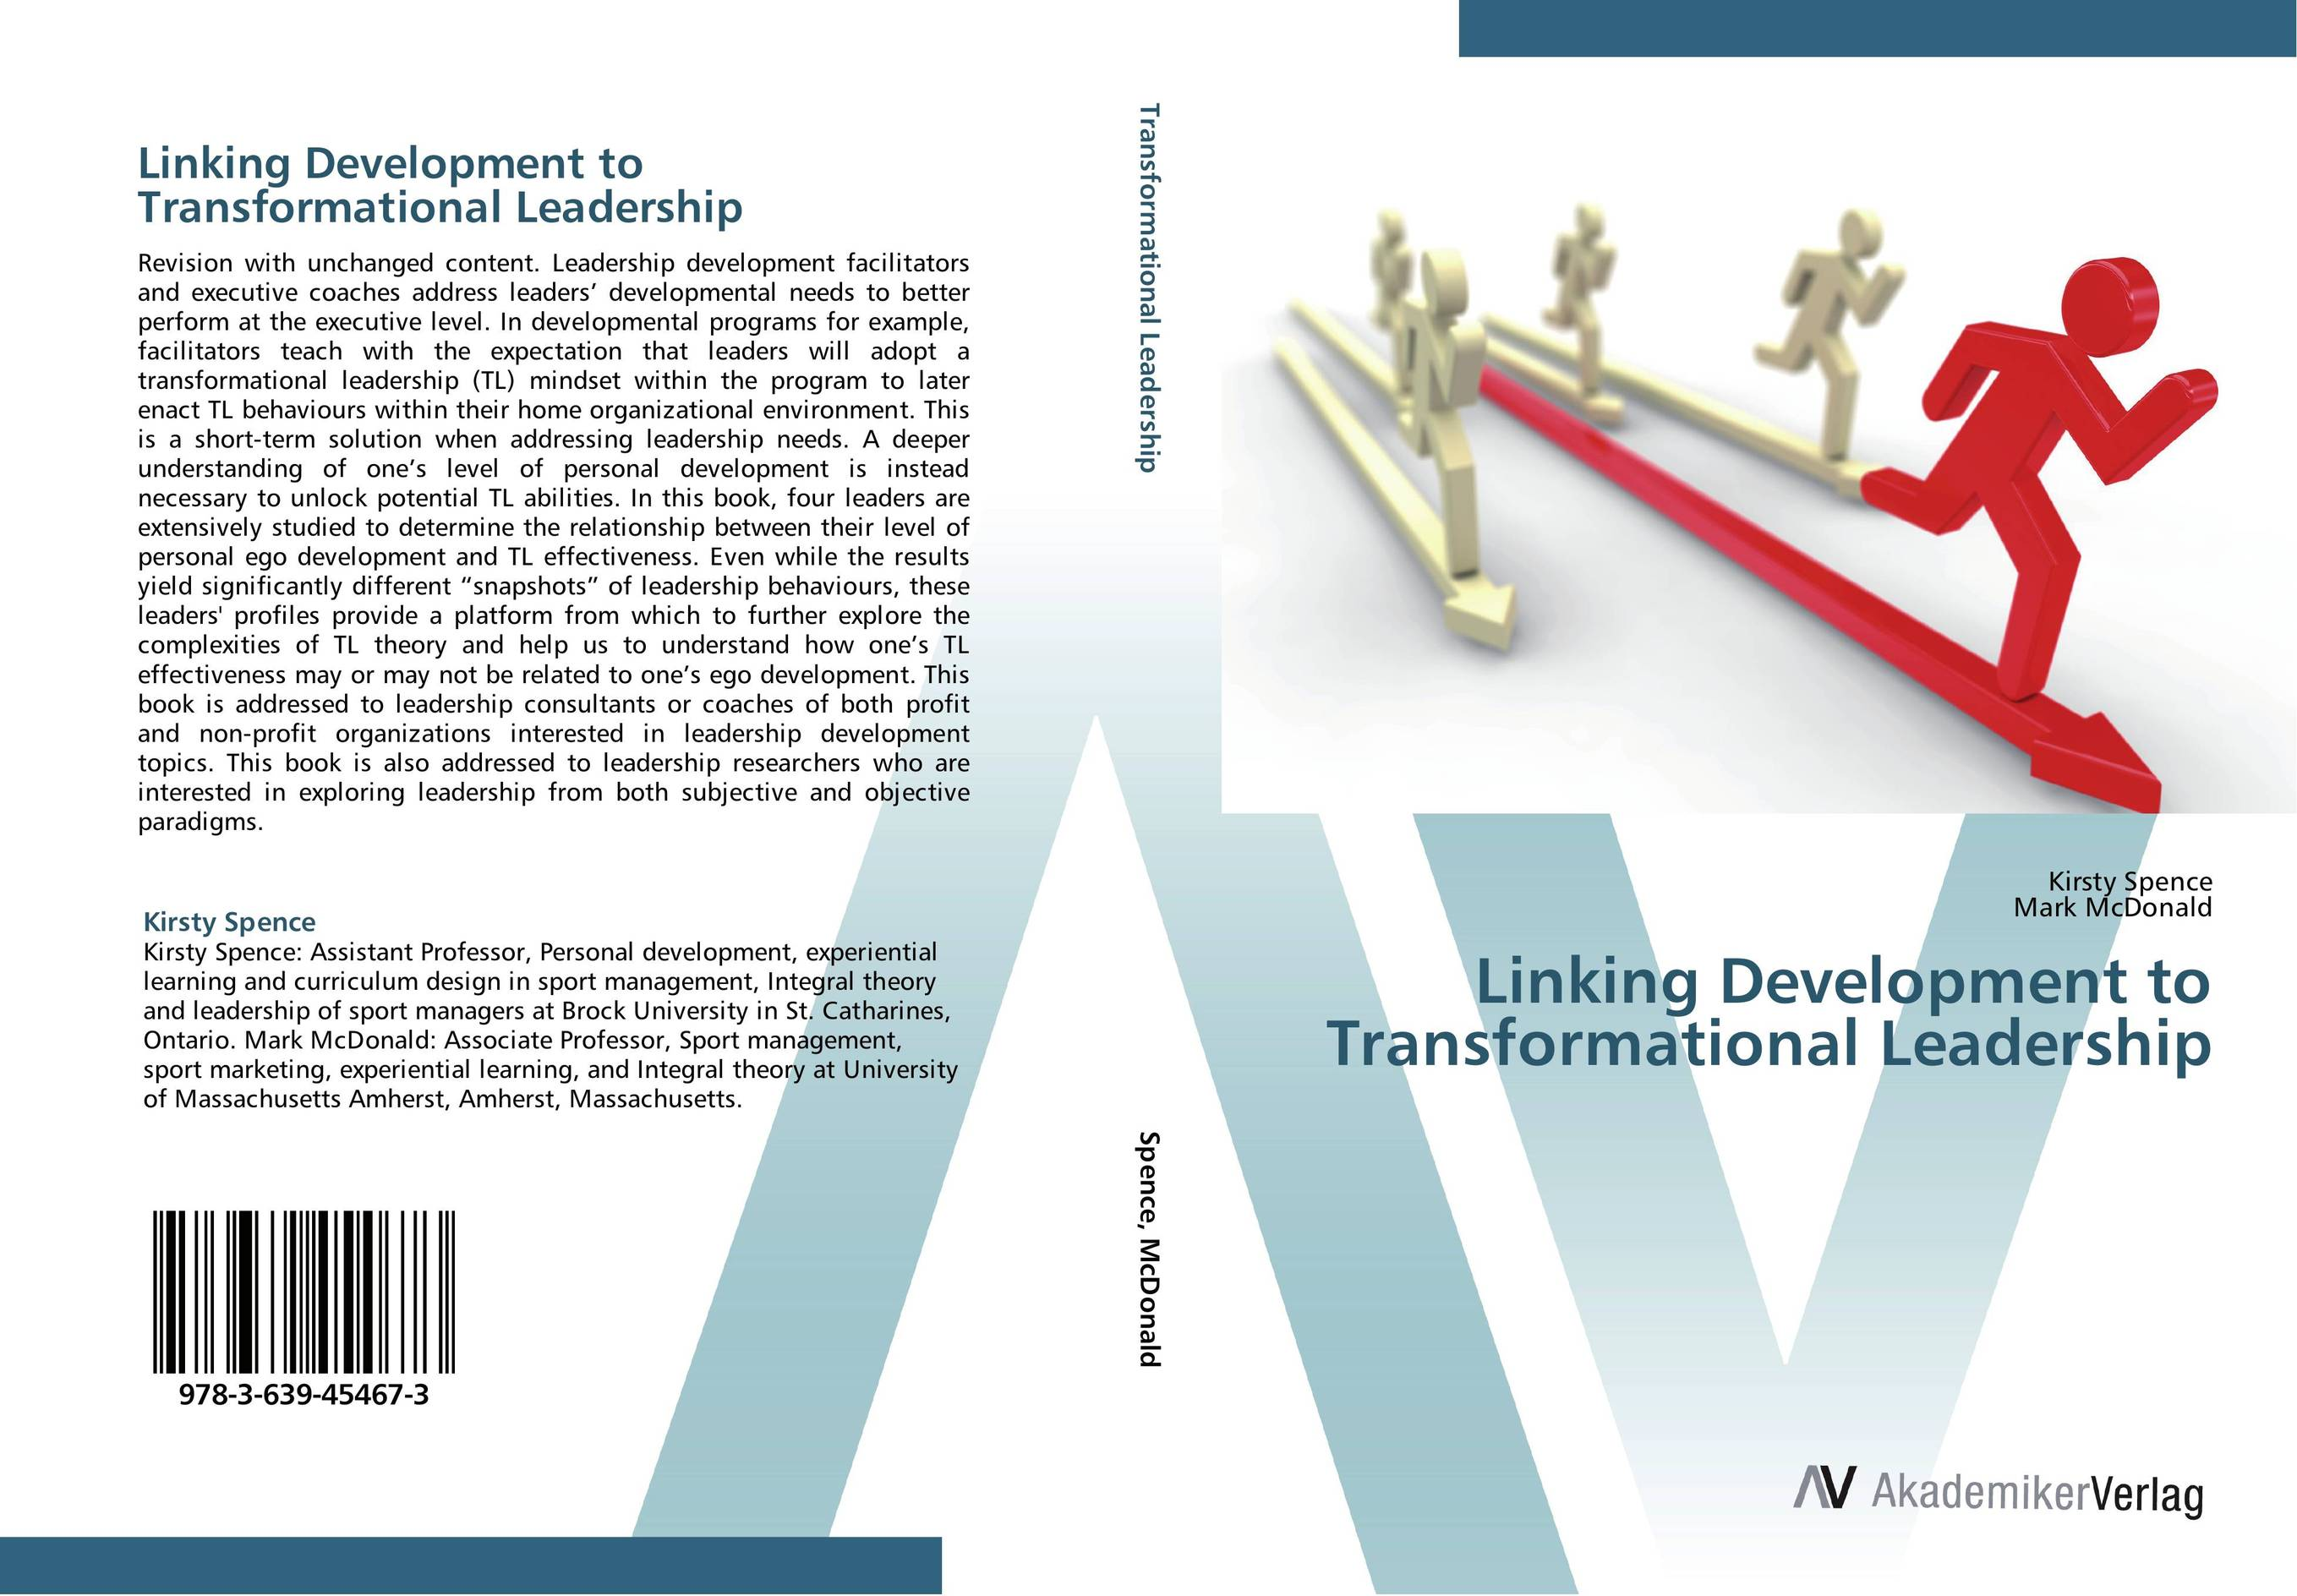 Linking Development to Transformational Leadership